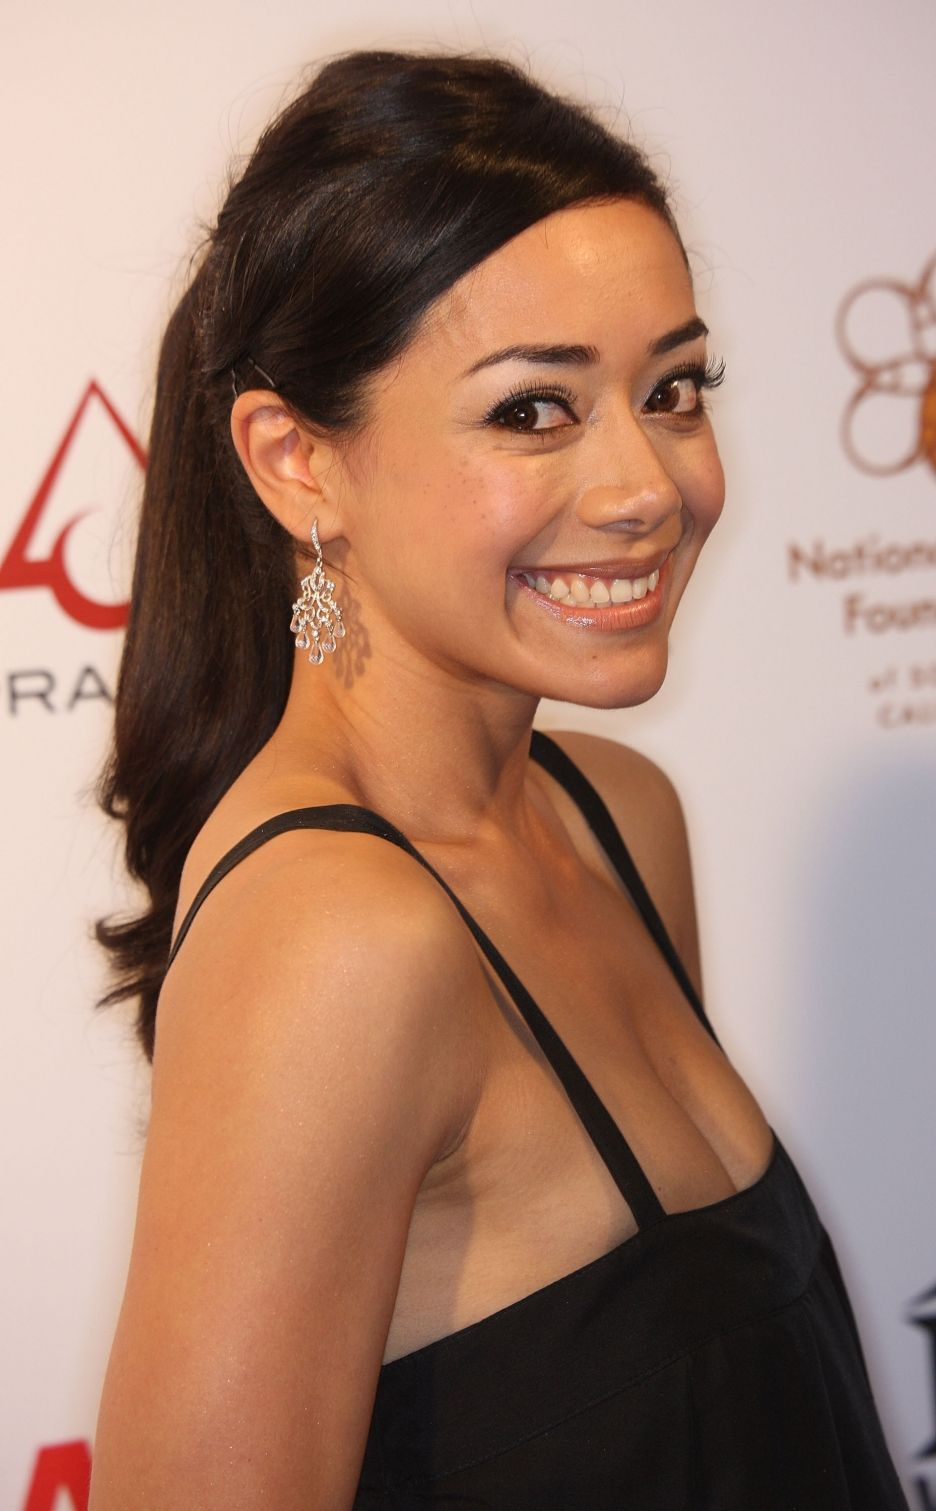 Fotos Aimee Garcia naked (57 photos), Pussy, Paparazzi, Instagram, panties 2017